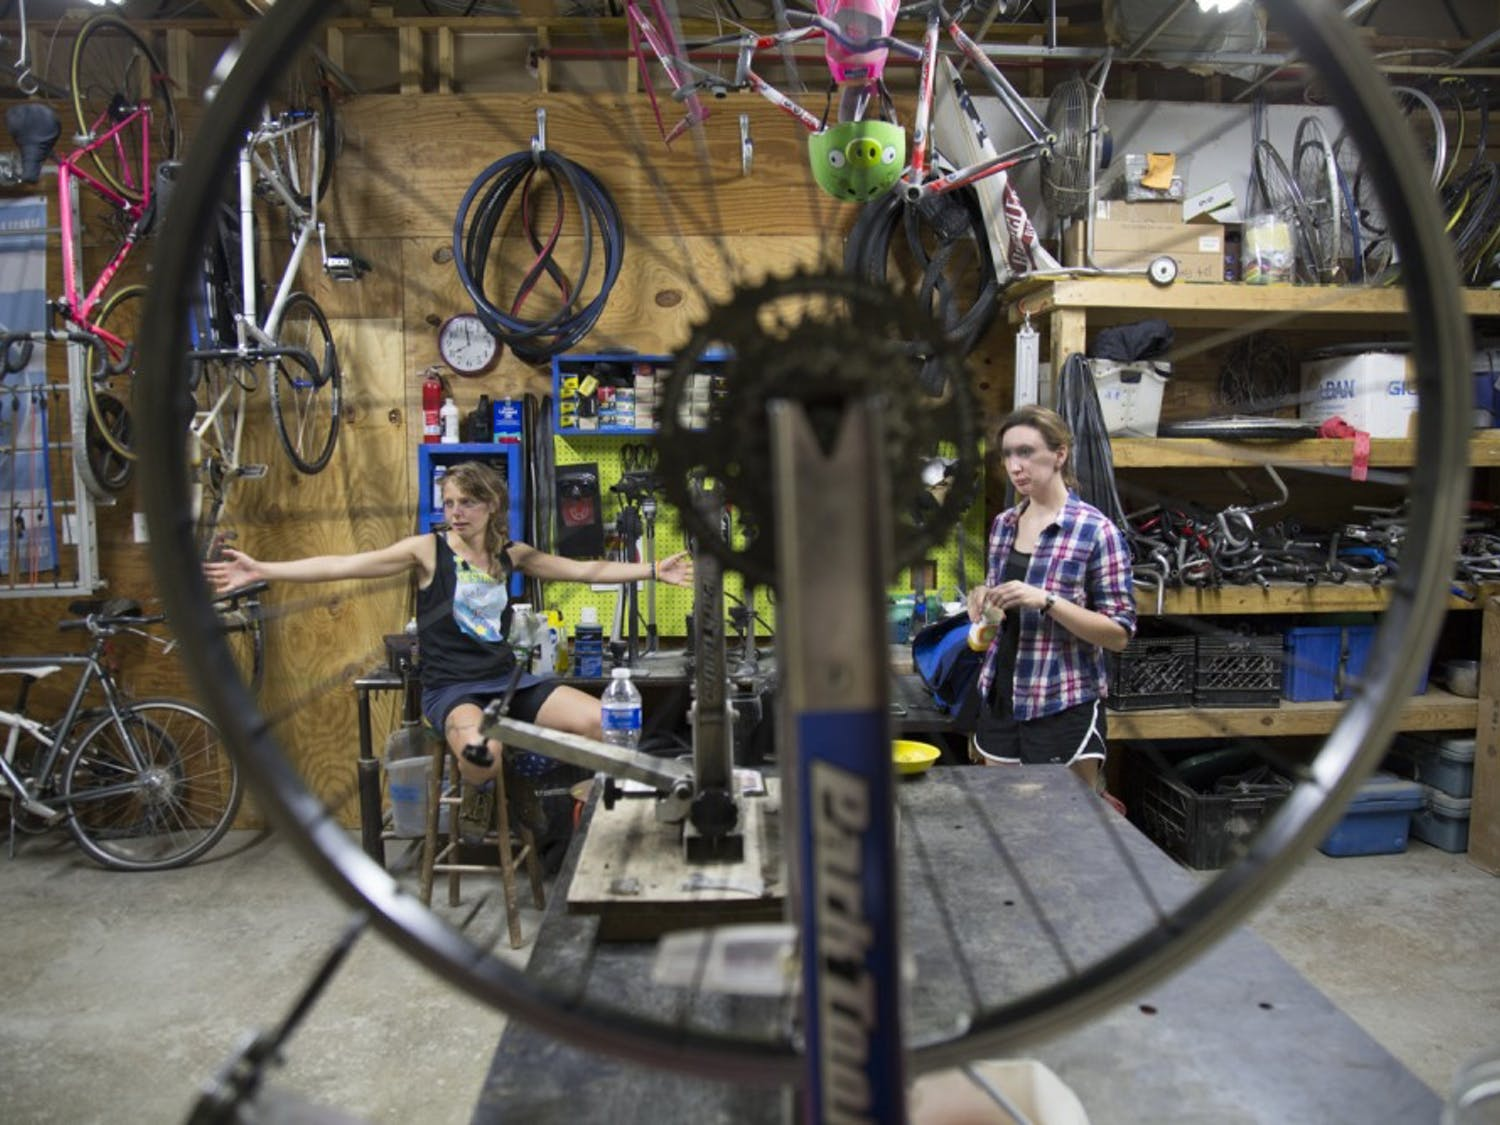 """Jolie Day (left) and Victoria Petermann talk with Giorgi before Moon Cycles on Sept. 7, 2015. """"""""I meet the coolest people,"""" Day said.  """"Bikes are art."""""""